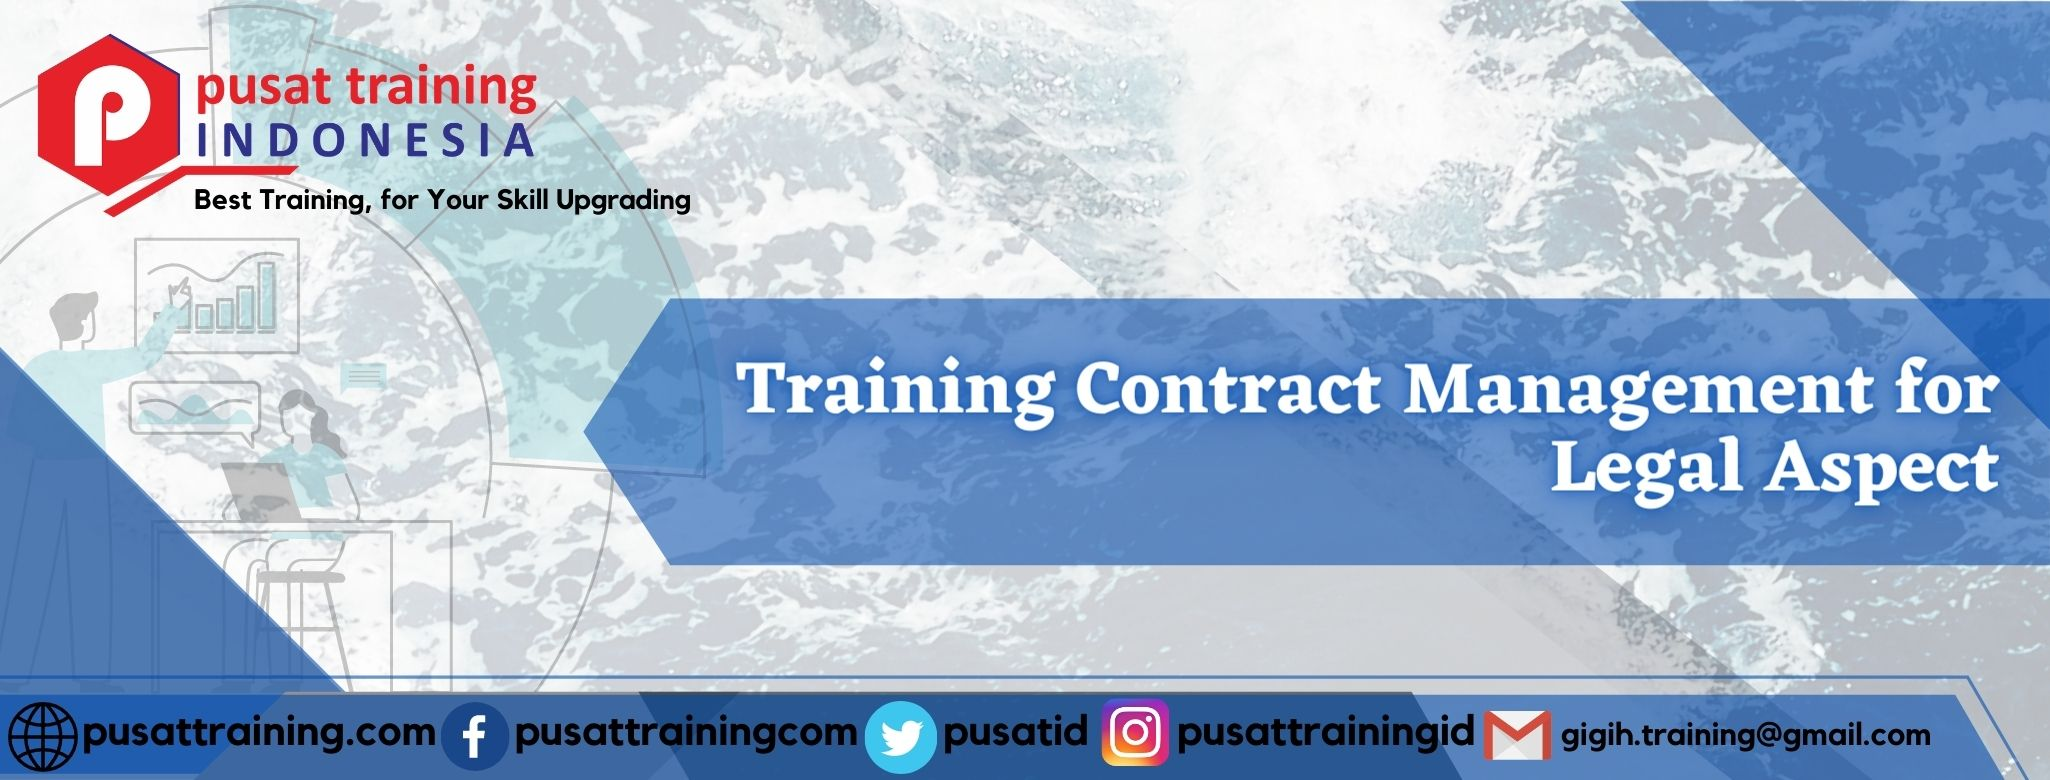 Training Contract Management for Legal Aspect